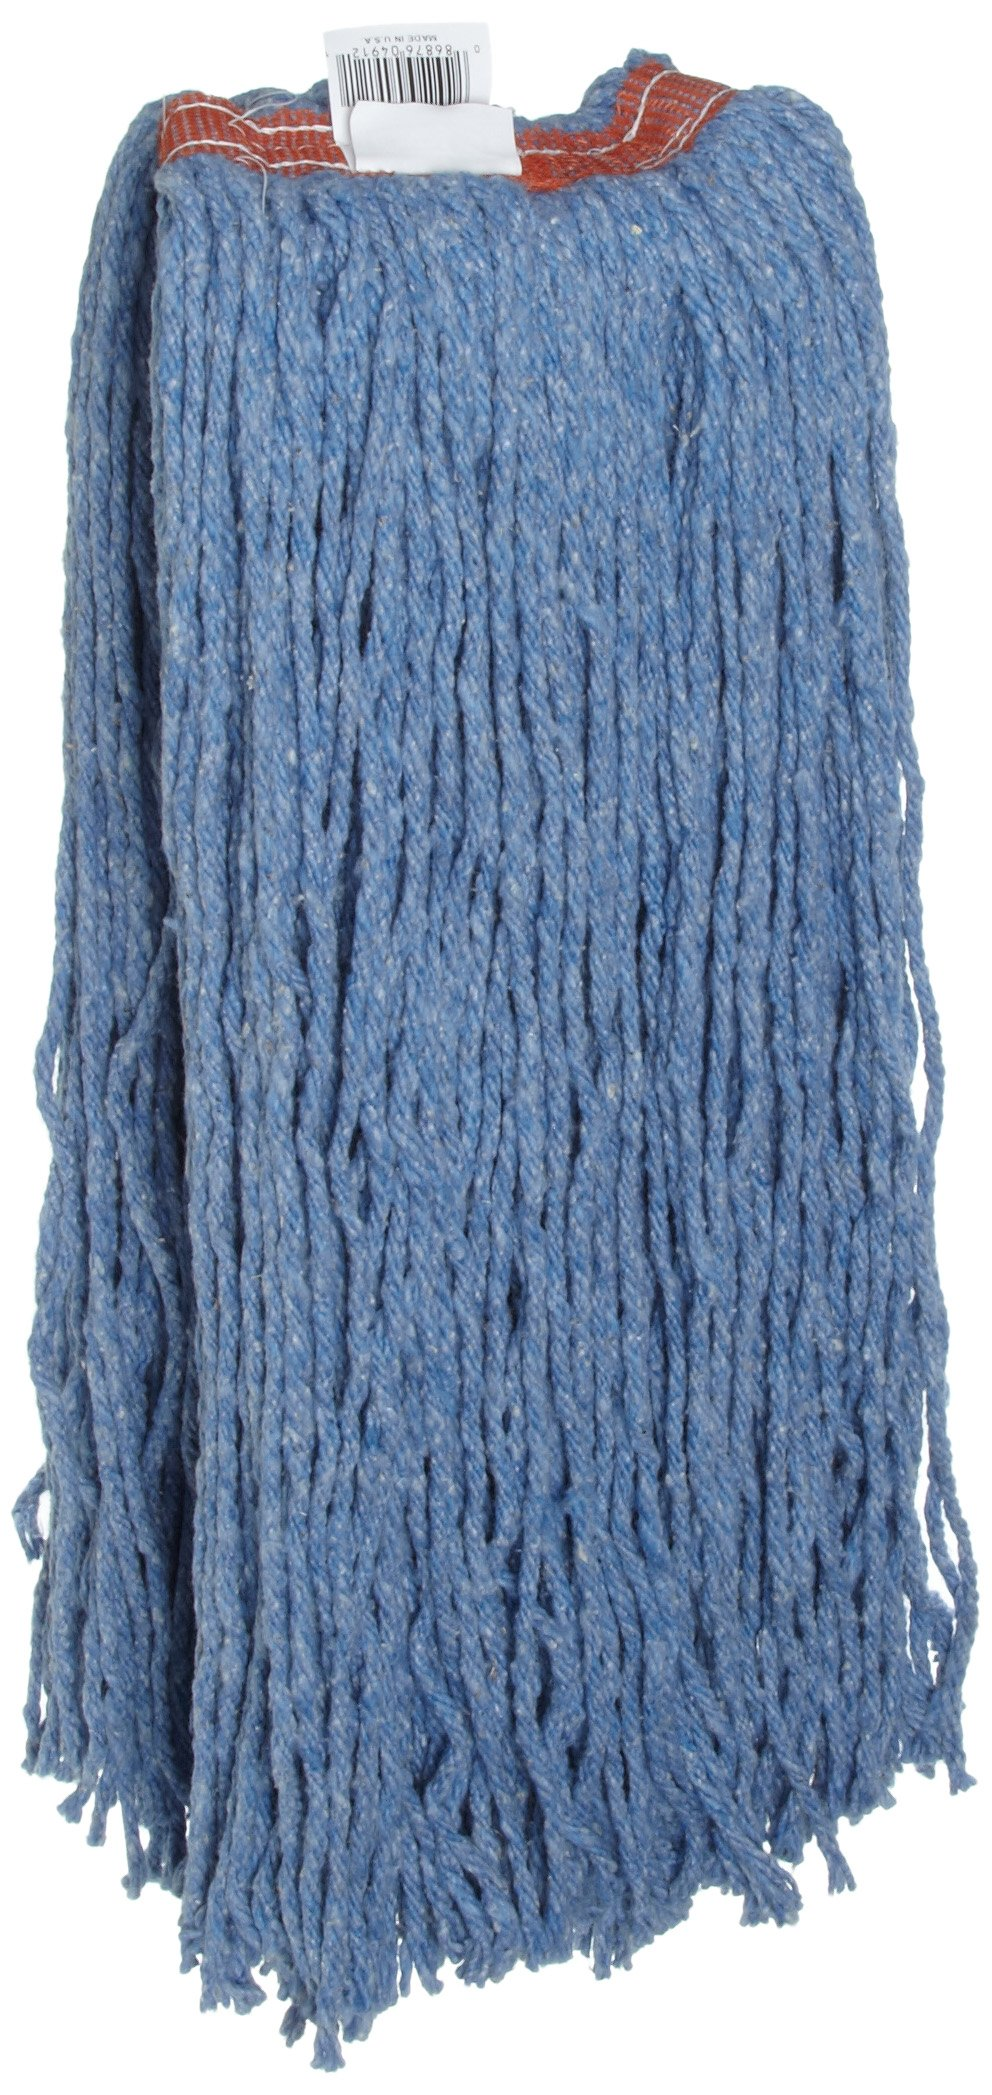 Rubbermaid Commercial FGF51900BL00 Premium 8-Ply Cut-End Blend Mop, 32-ounce, 1-inch Orange Headband, Blue by Rubbermaid Commercial Products